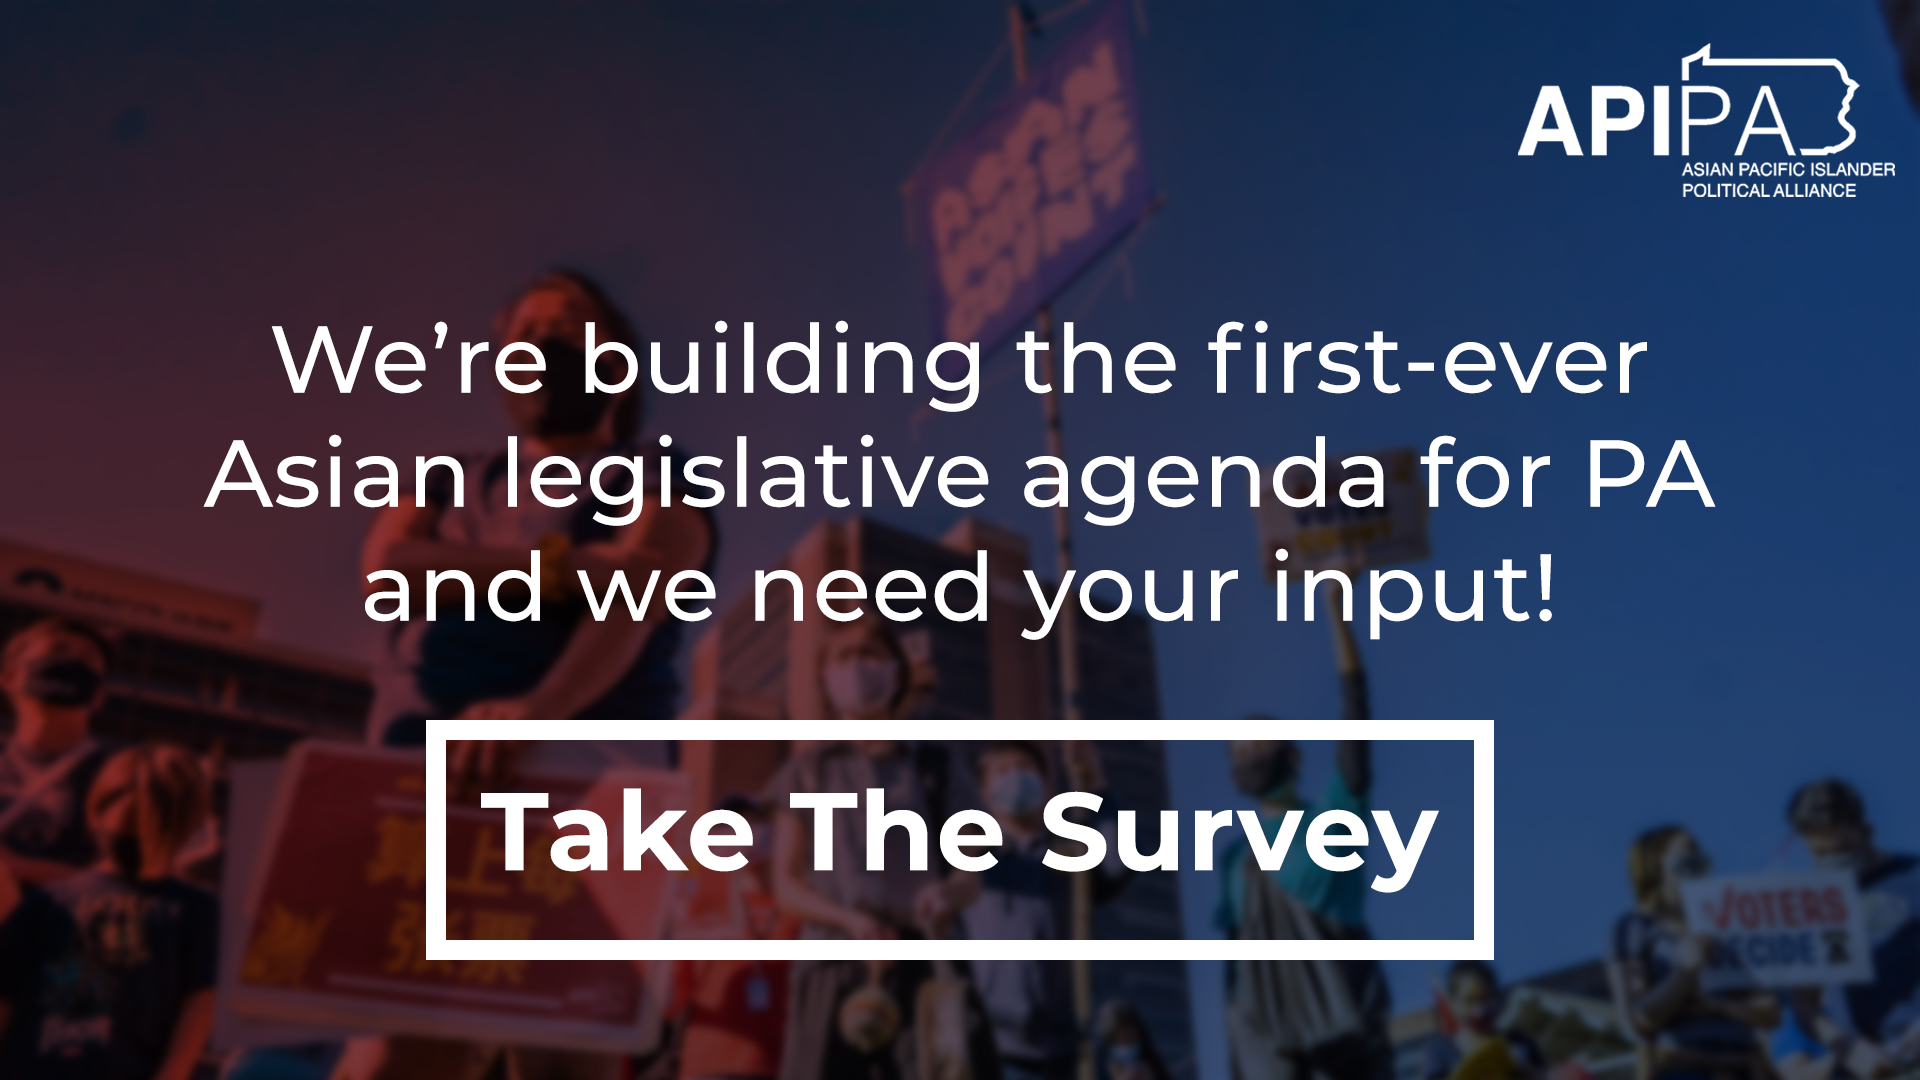 We're building the first-ever Asian legislative agenda for PA and we need your input! Take the Survey